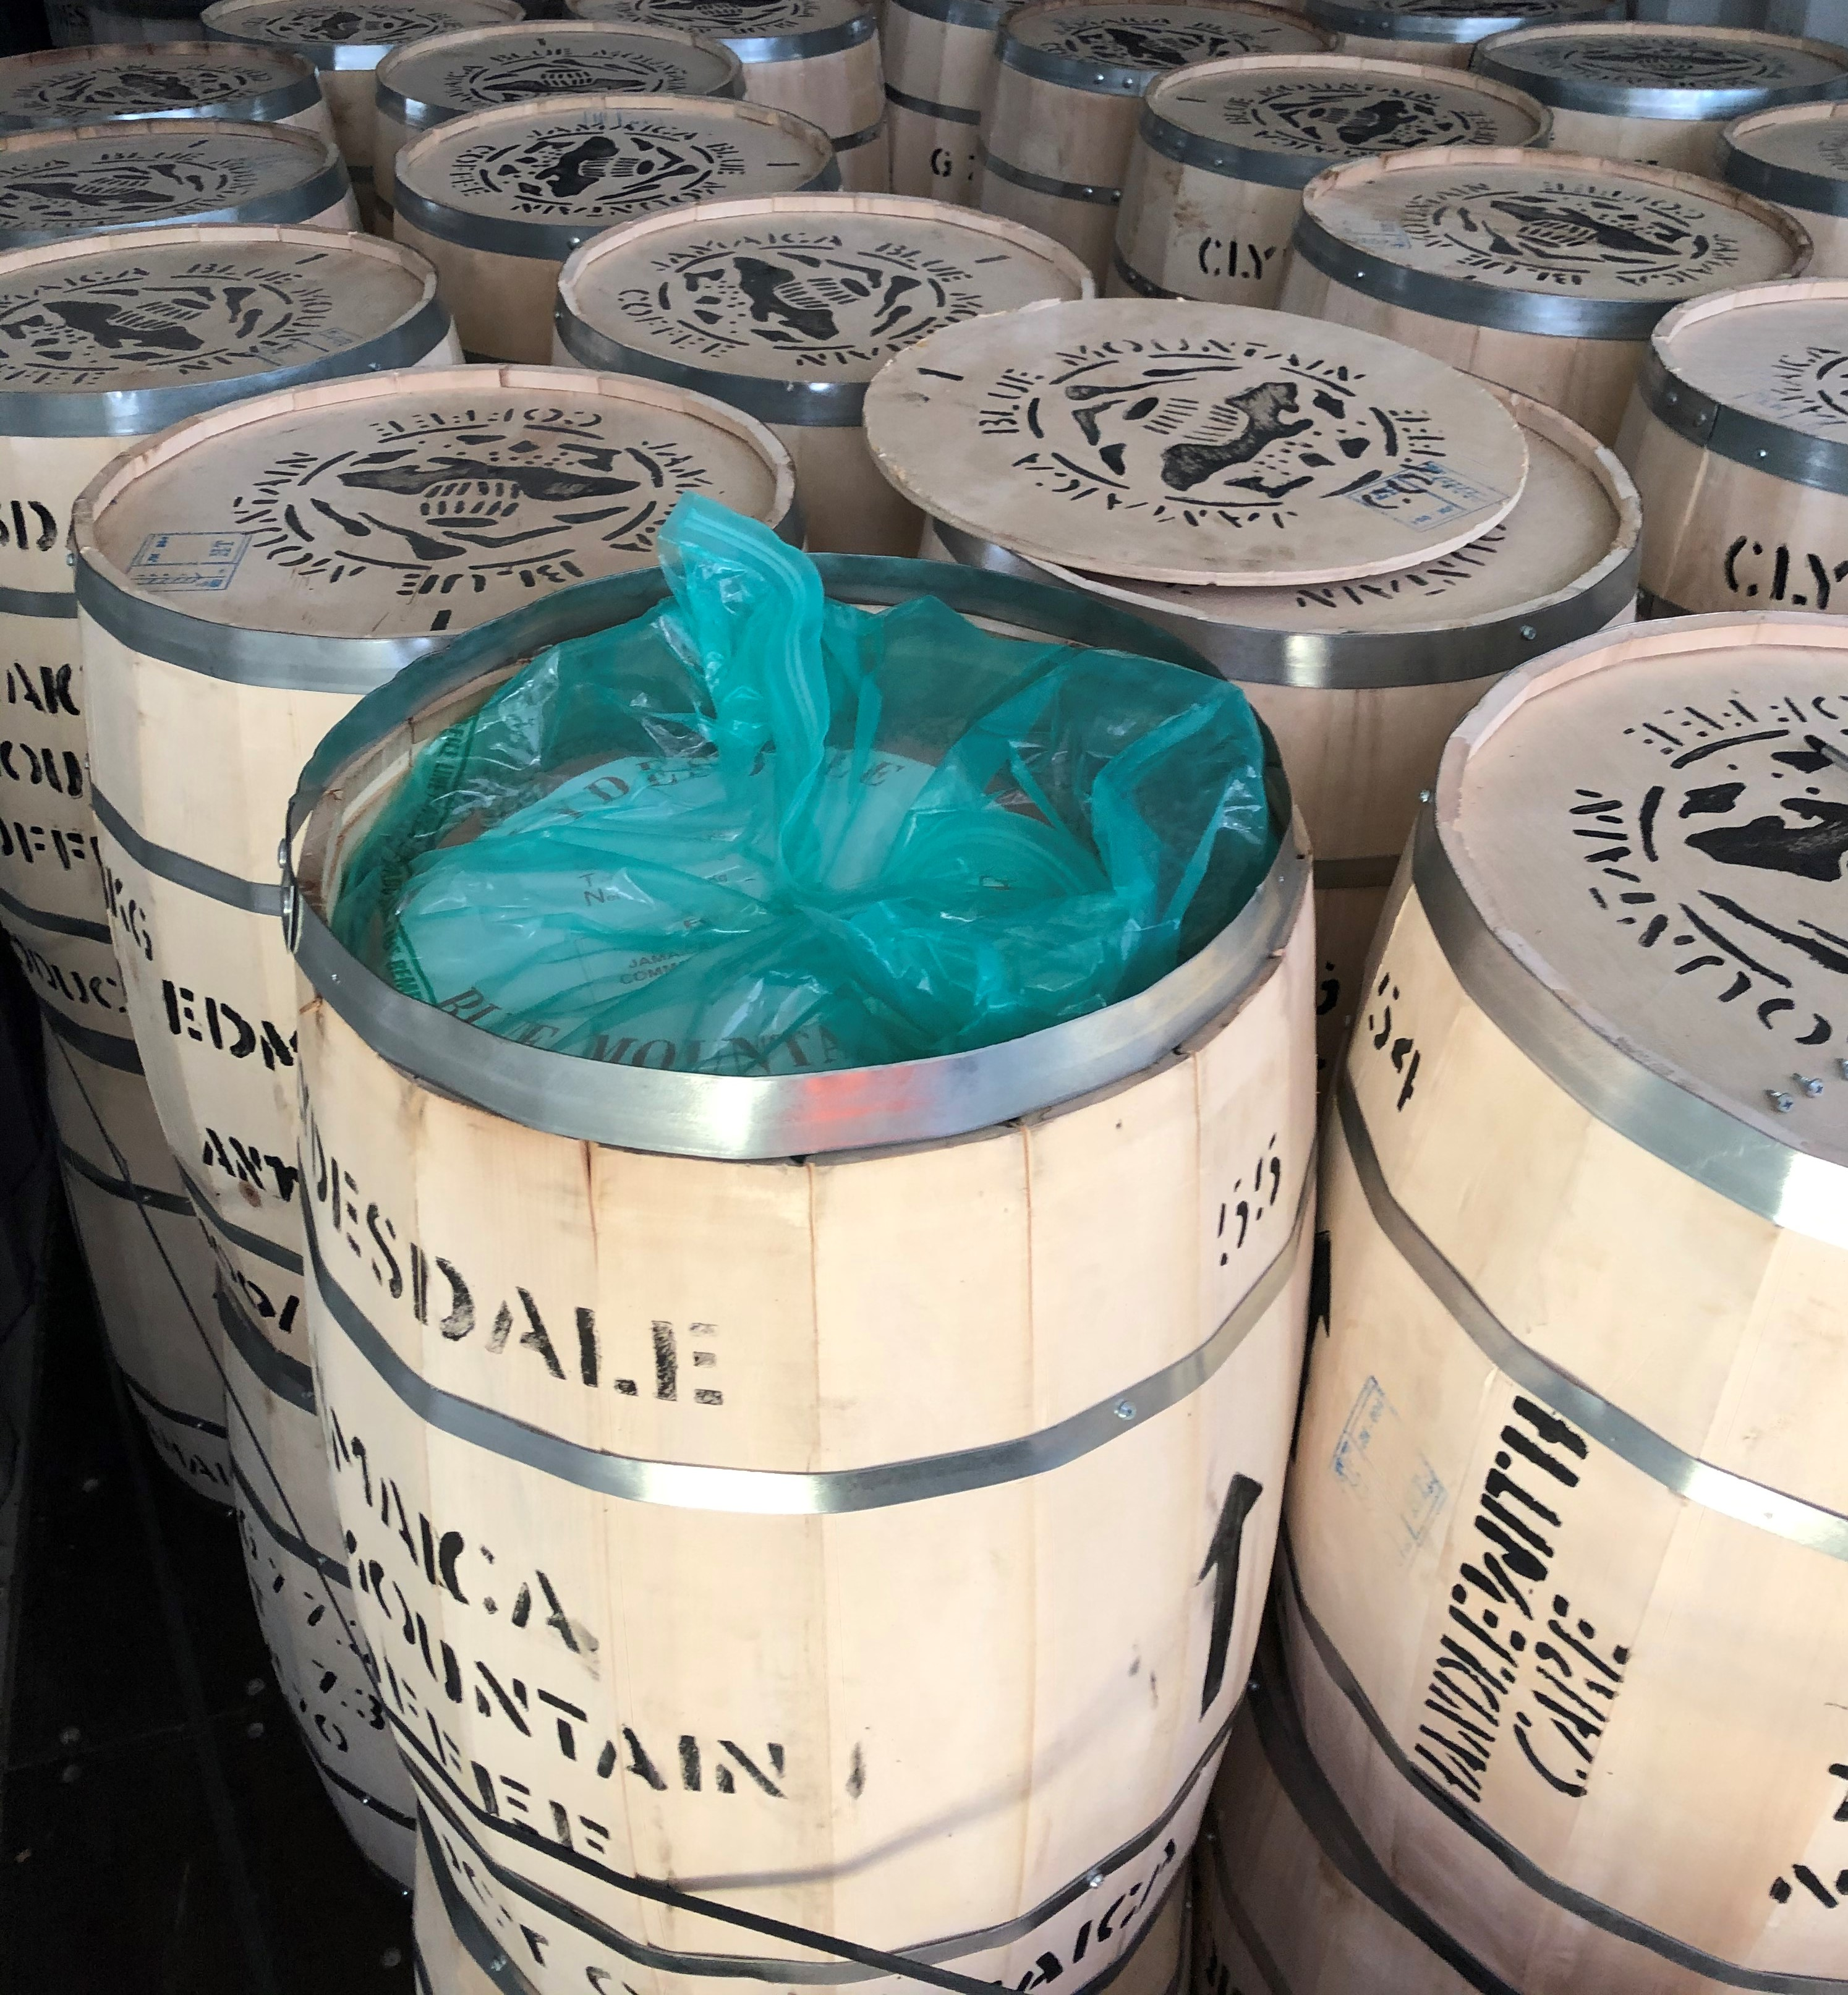 Barrels of Blue Mountain coffee beans